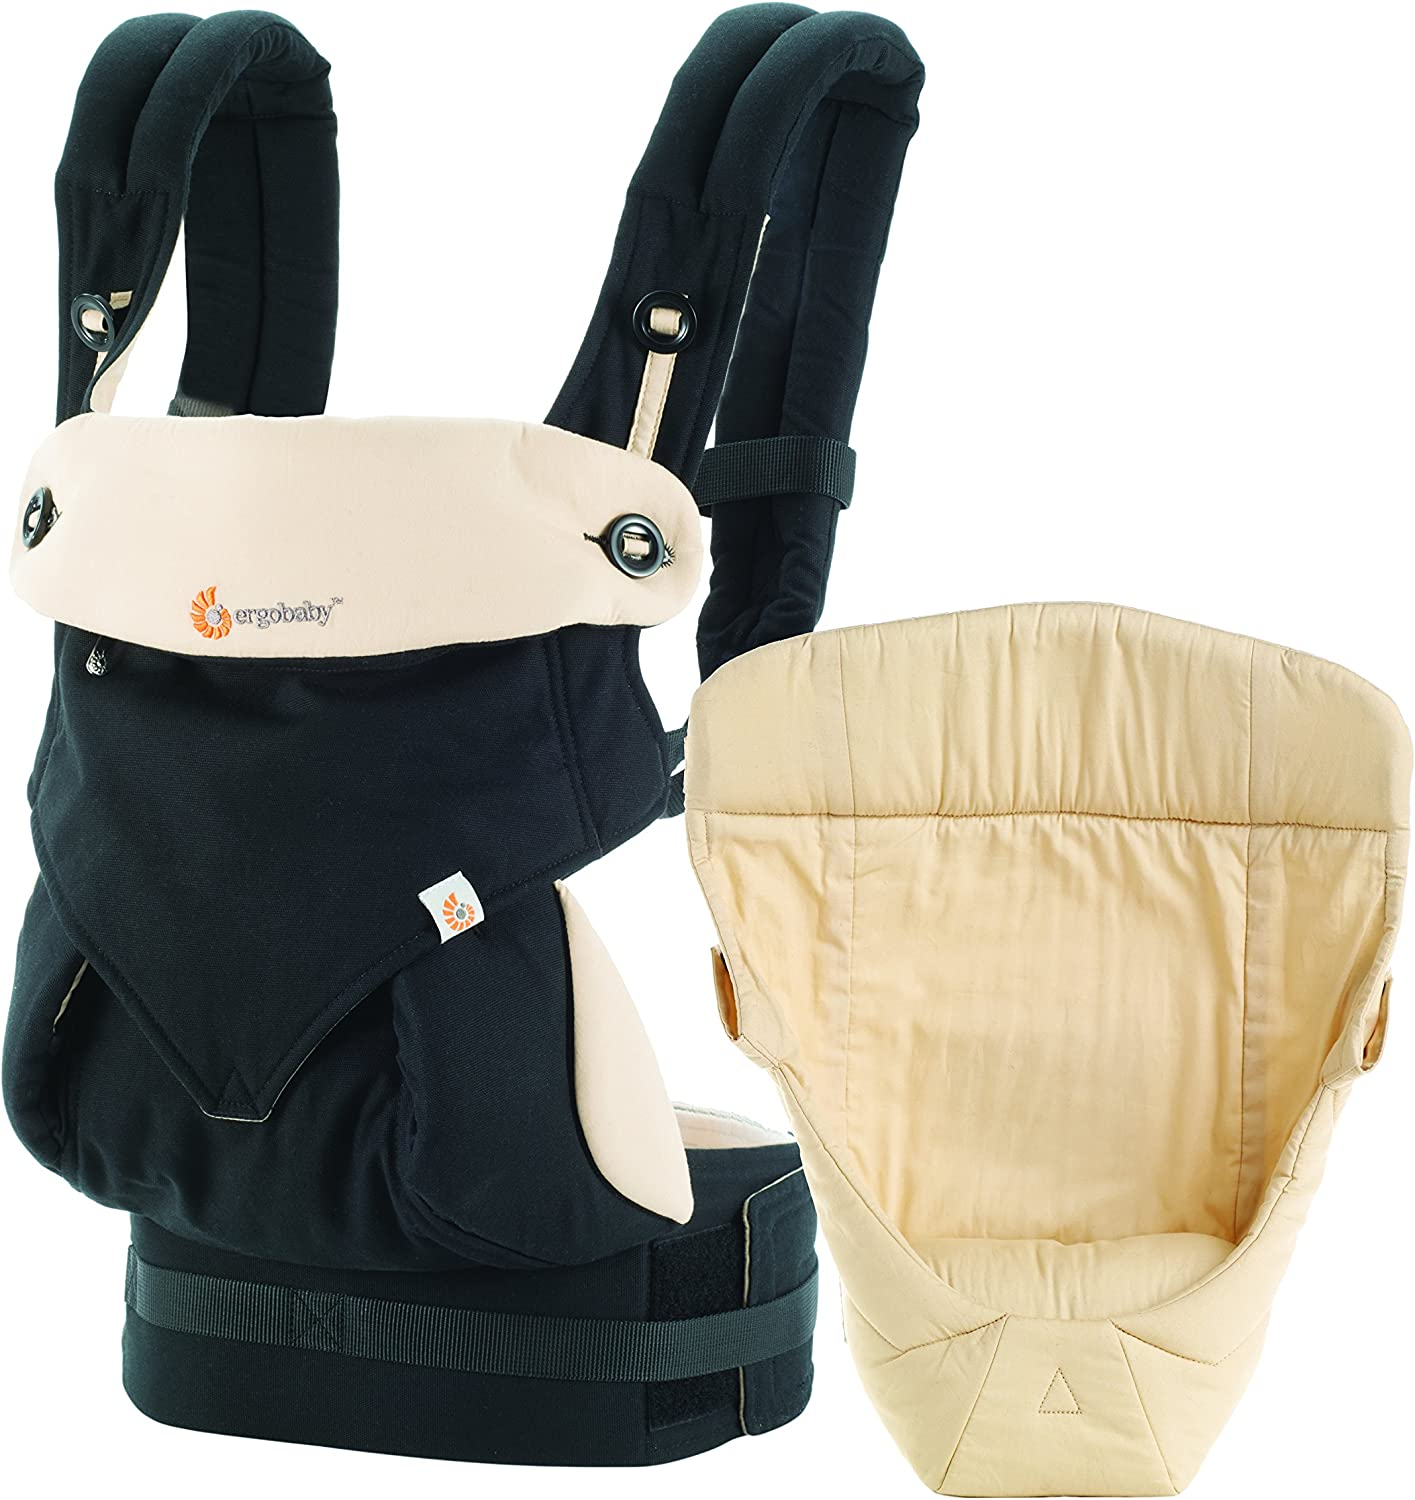 Ergobaby Bundle  2 Items  Black Camel All Carry Position Award Winning 360 Baby Carrier and Easy Snug Infant Insert, Natural